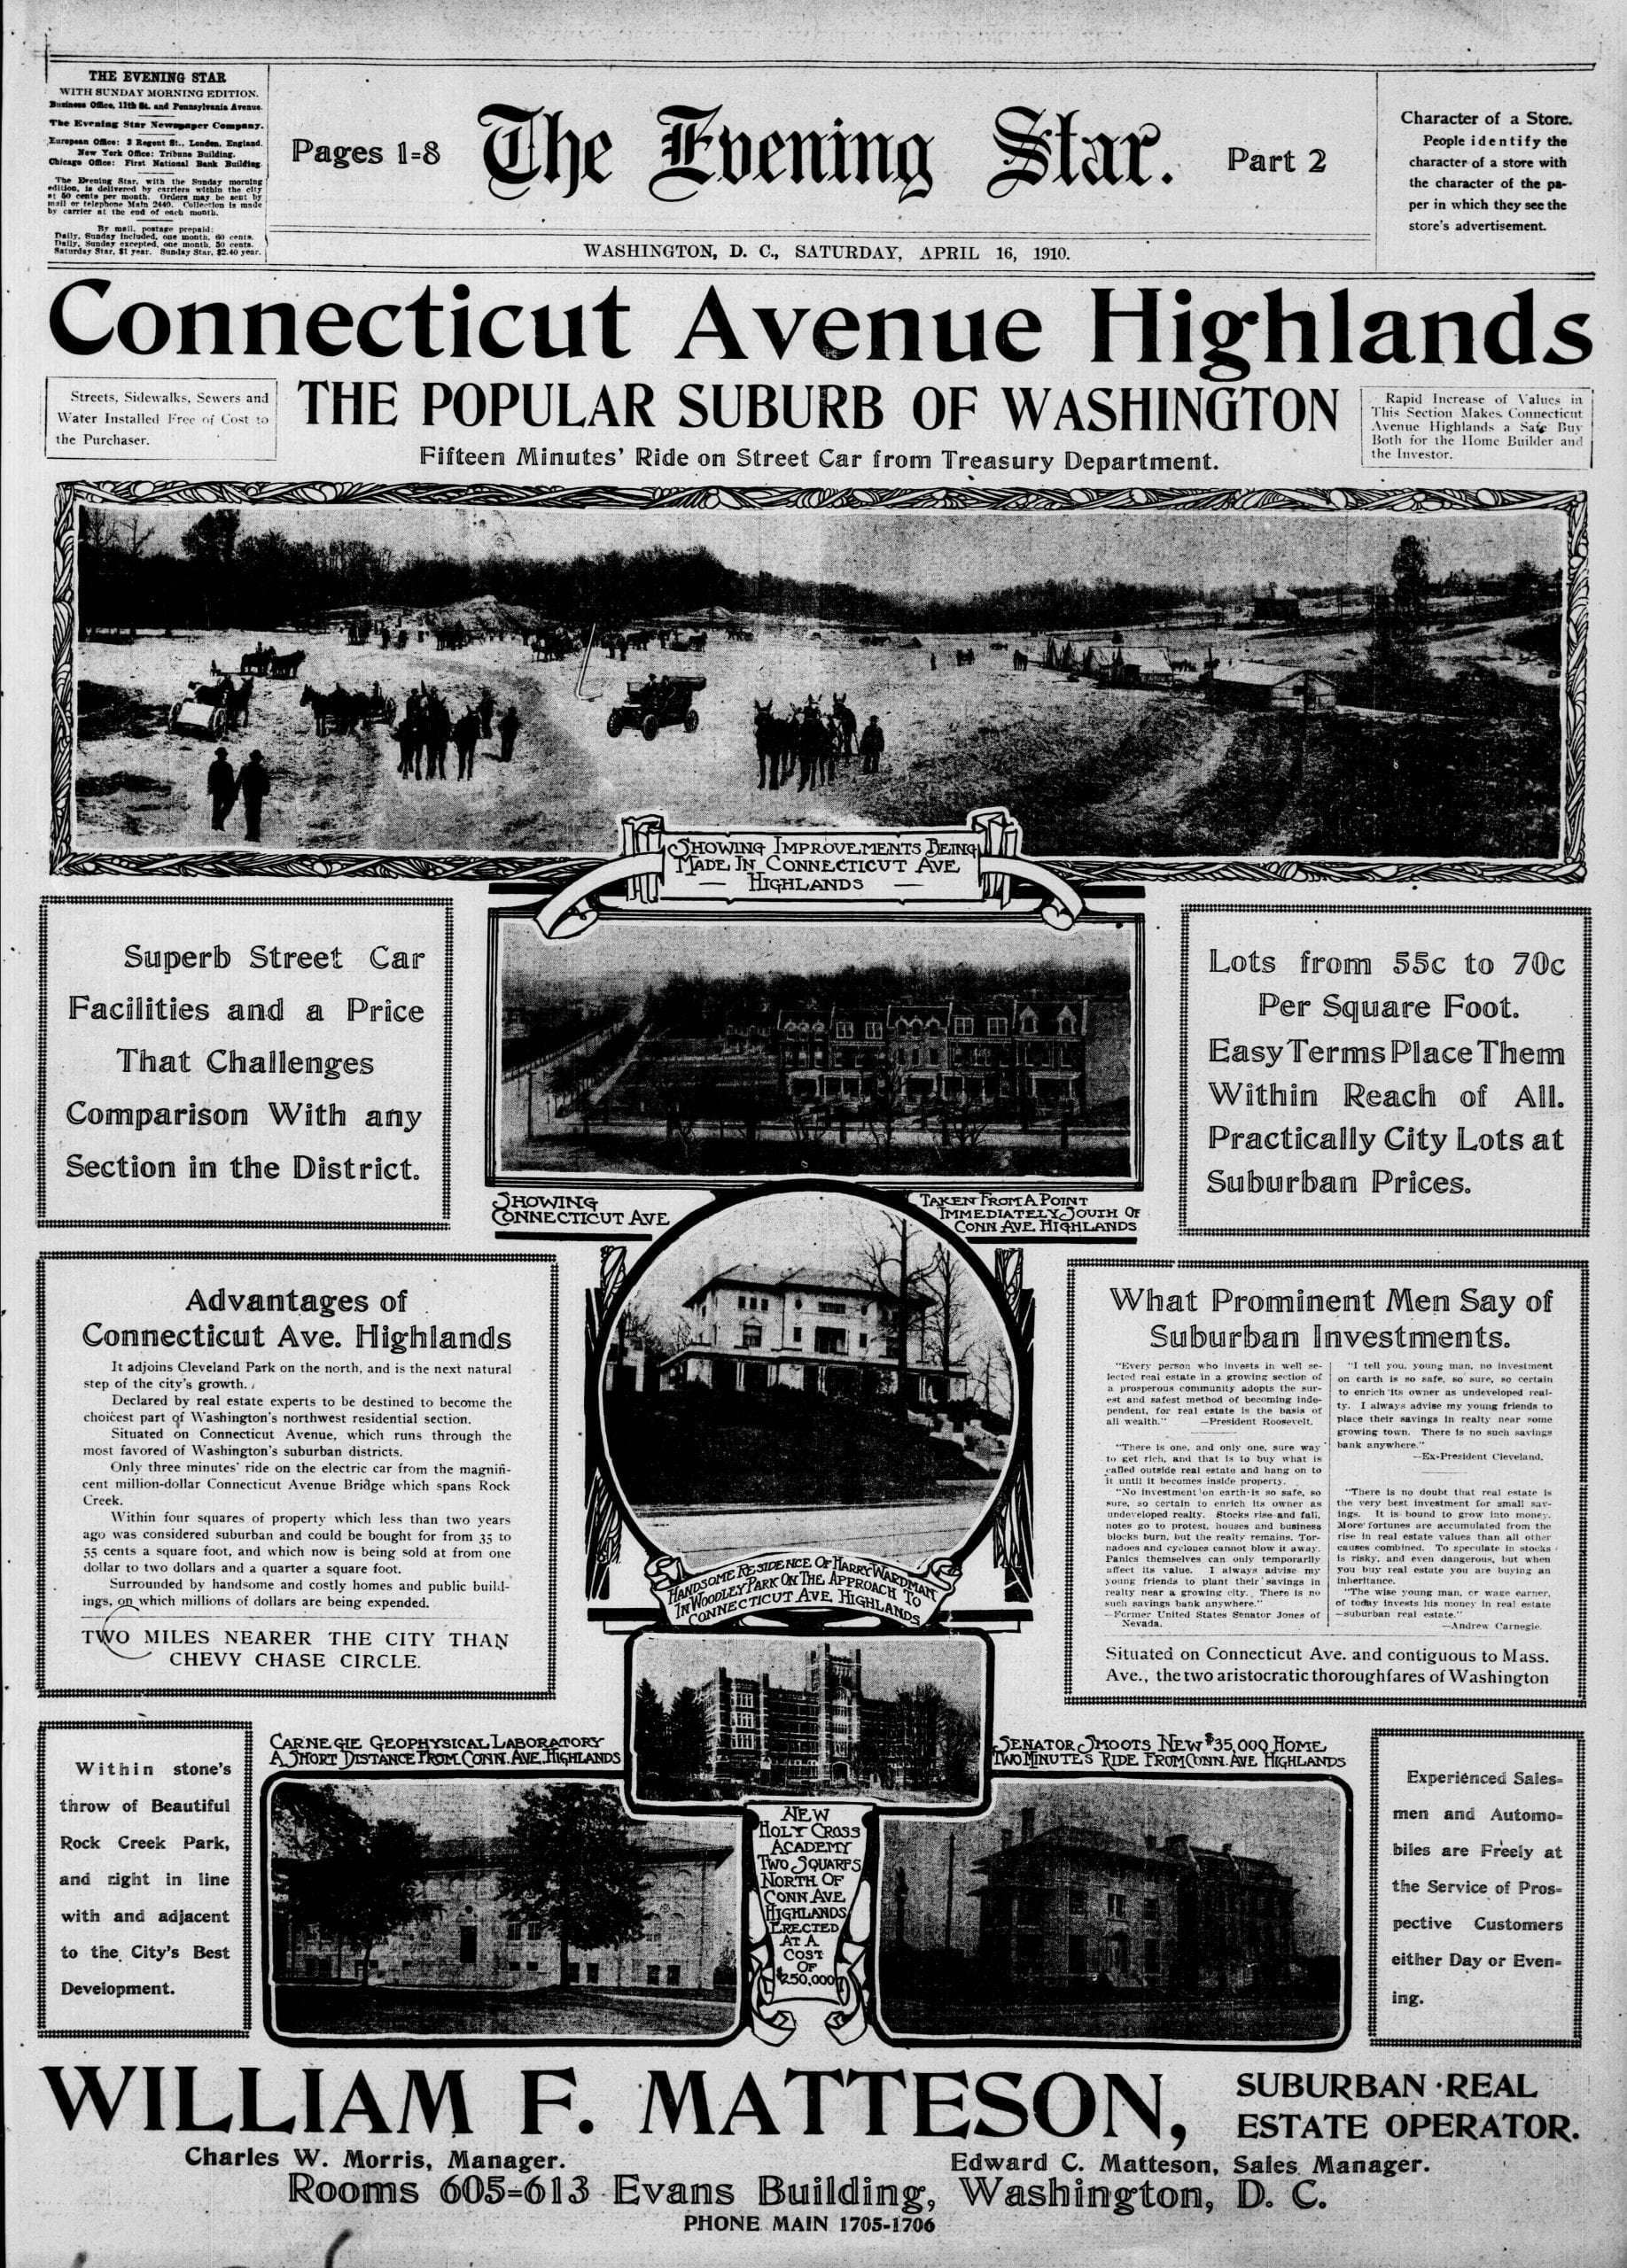 Connecticut Avenue Highlands advertisement in 1910